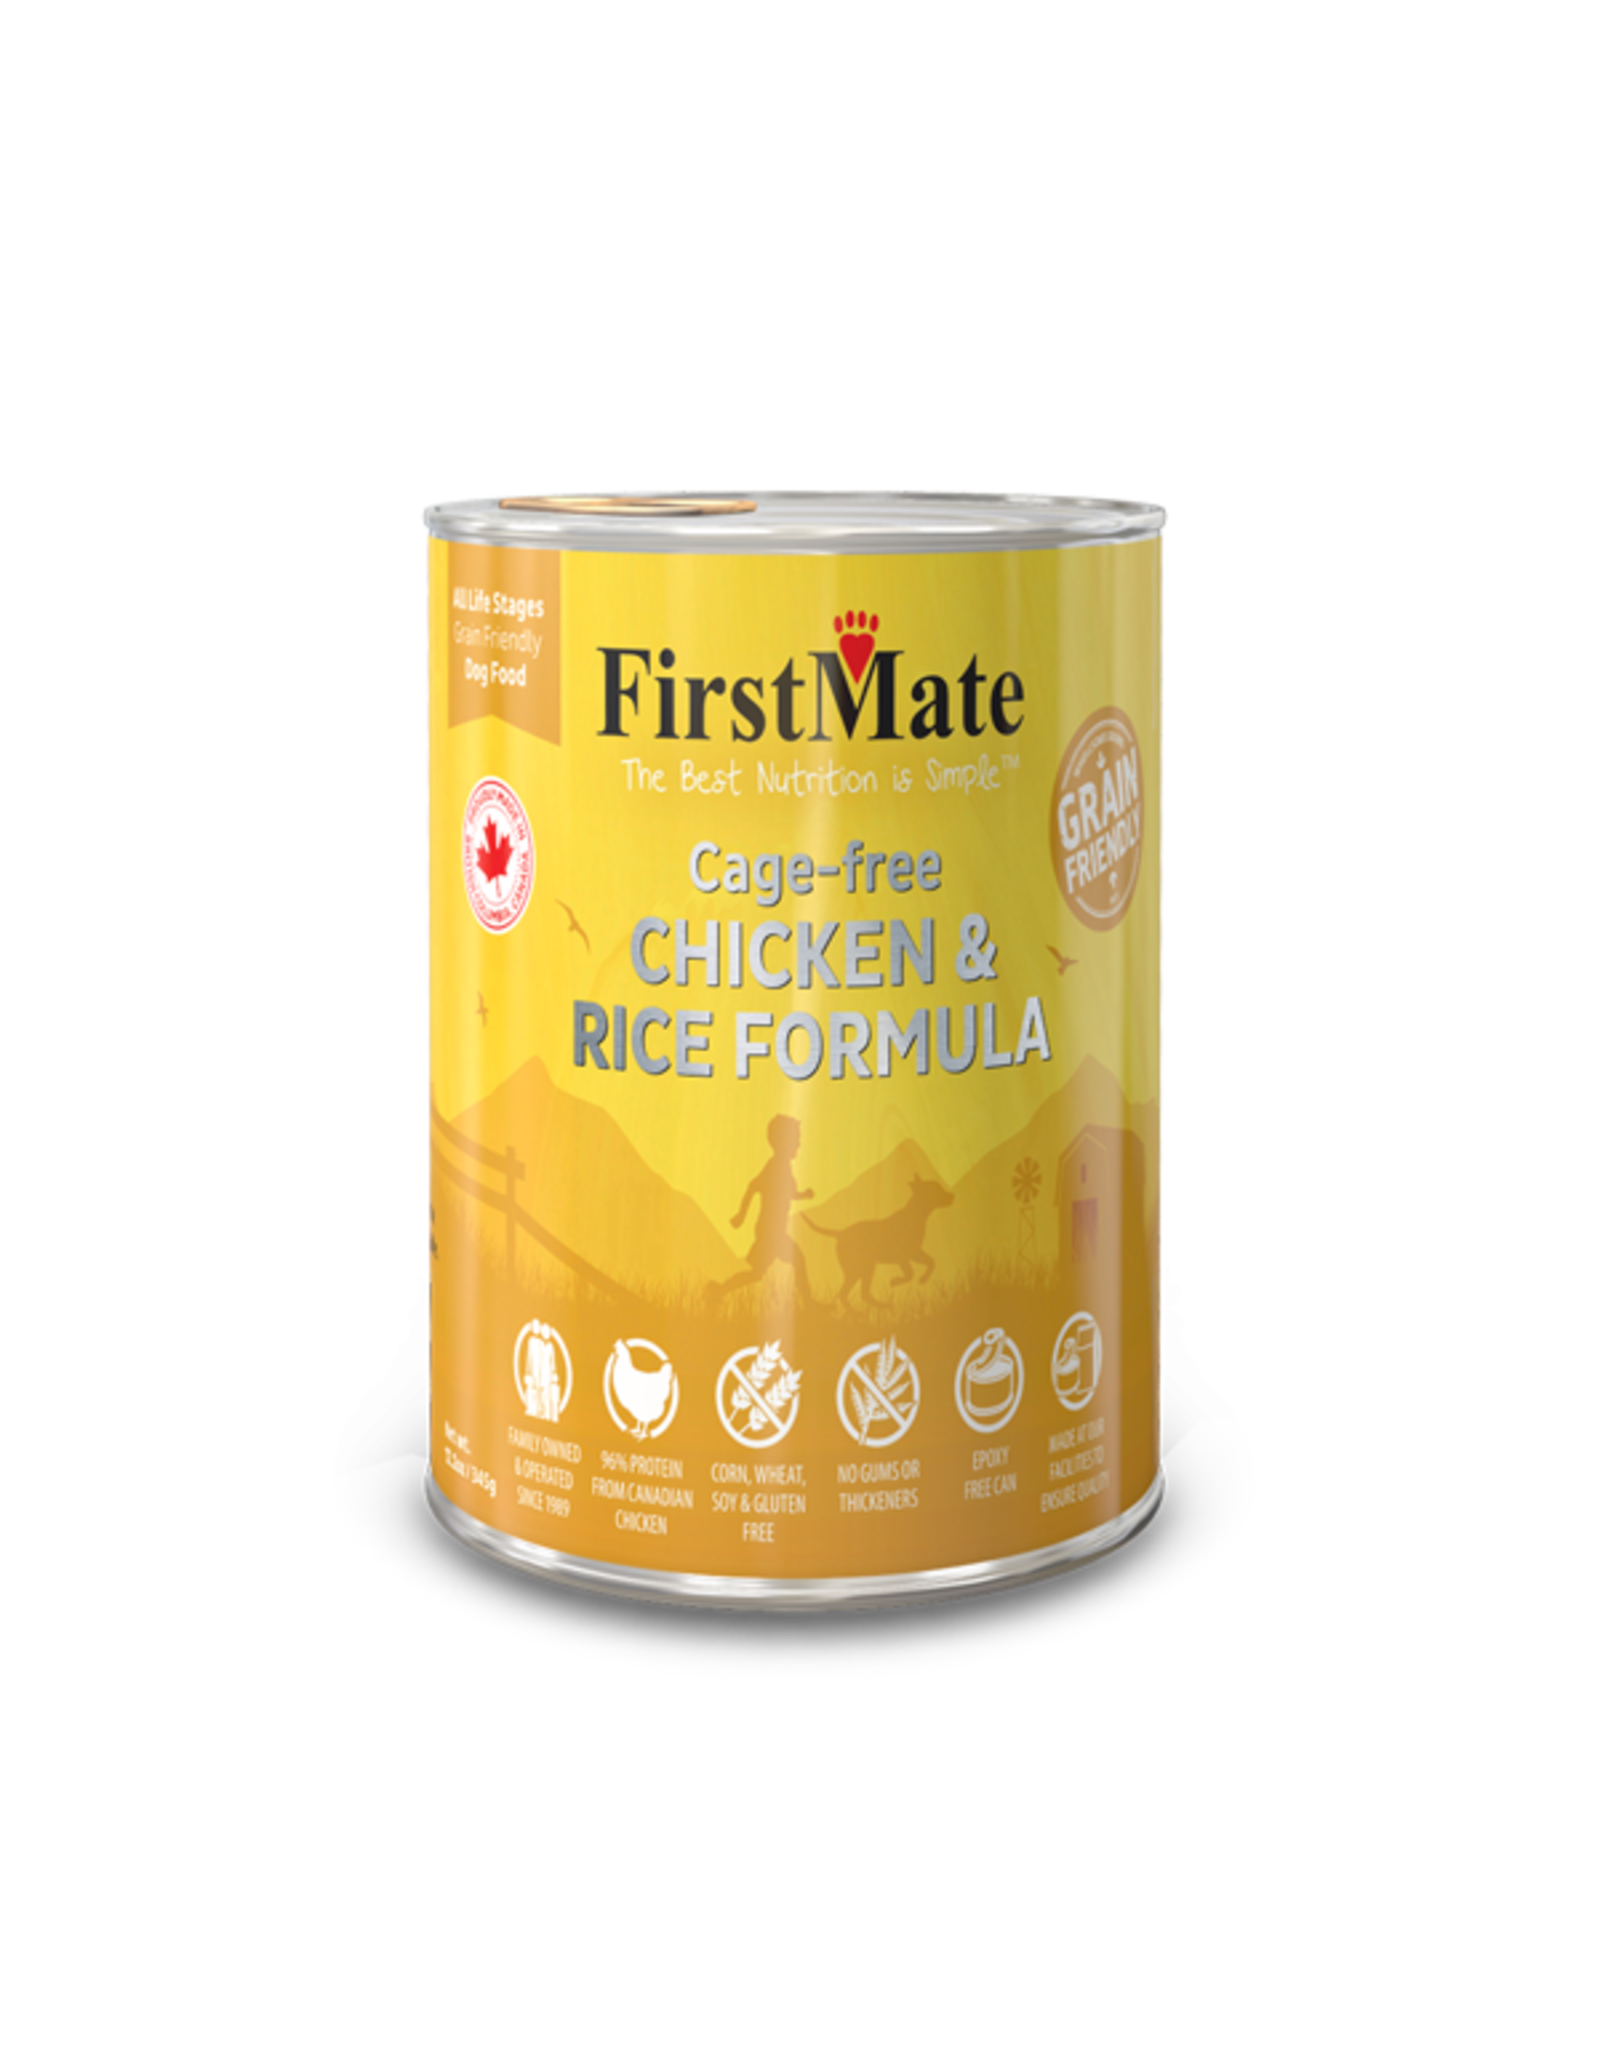 First Mate First Mate Dog Chicken and Rice 12.2oz